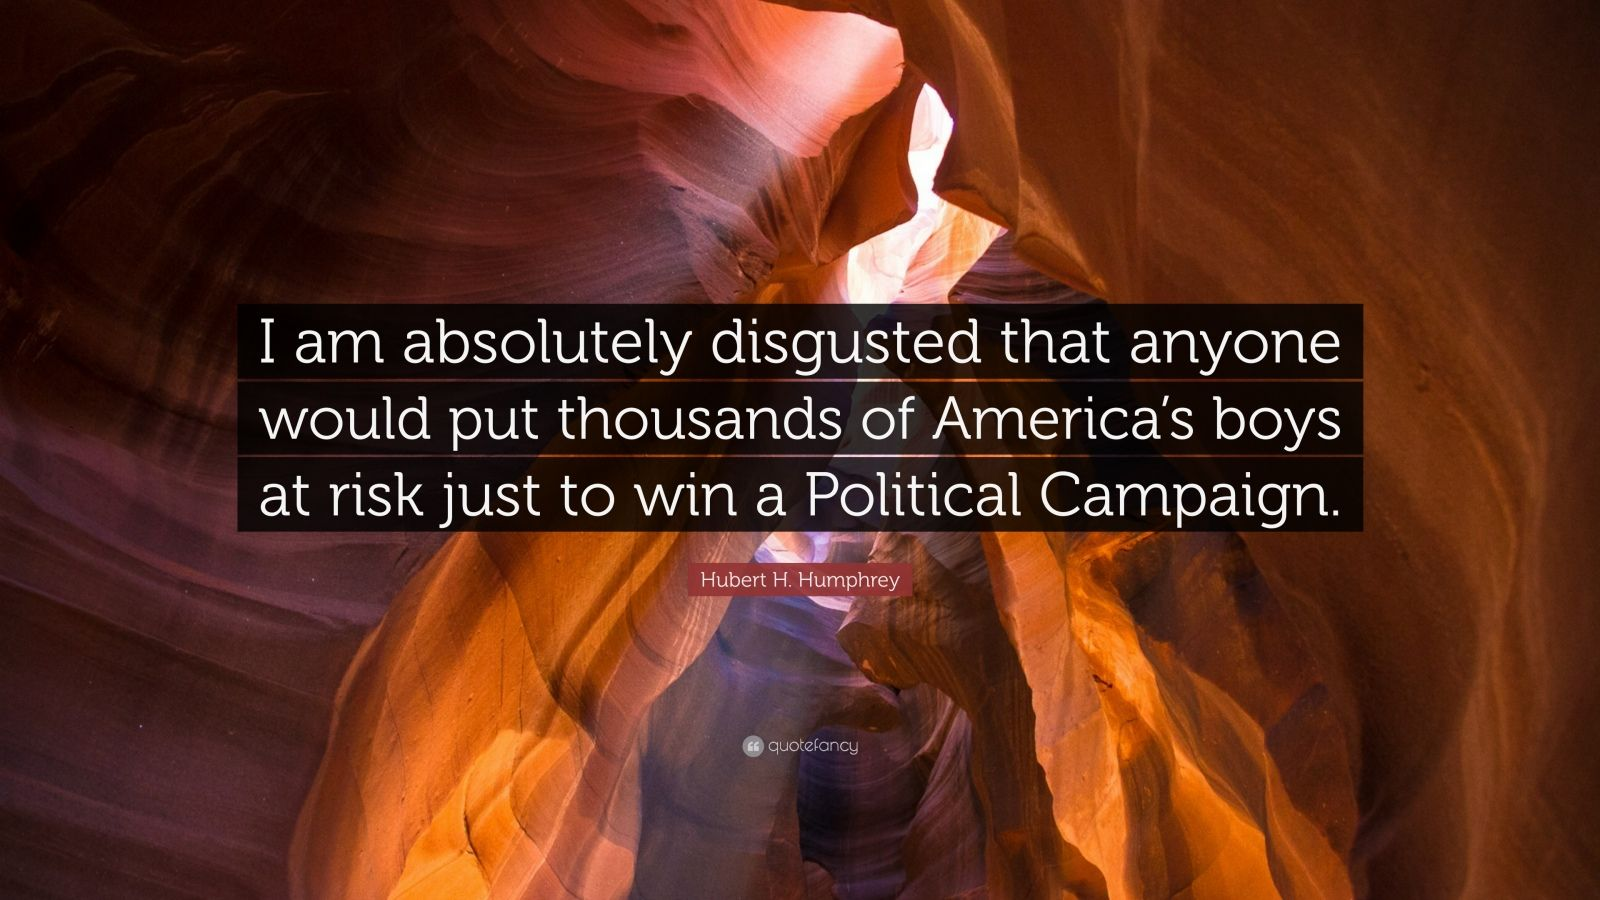 """Hubert H. Humphrey Quote: """"I am absolutely disgusted that anyone would put thousands of America's boys at risk just to win a Political Campaign."""""""